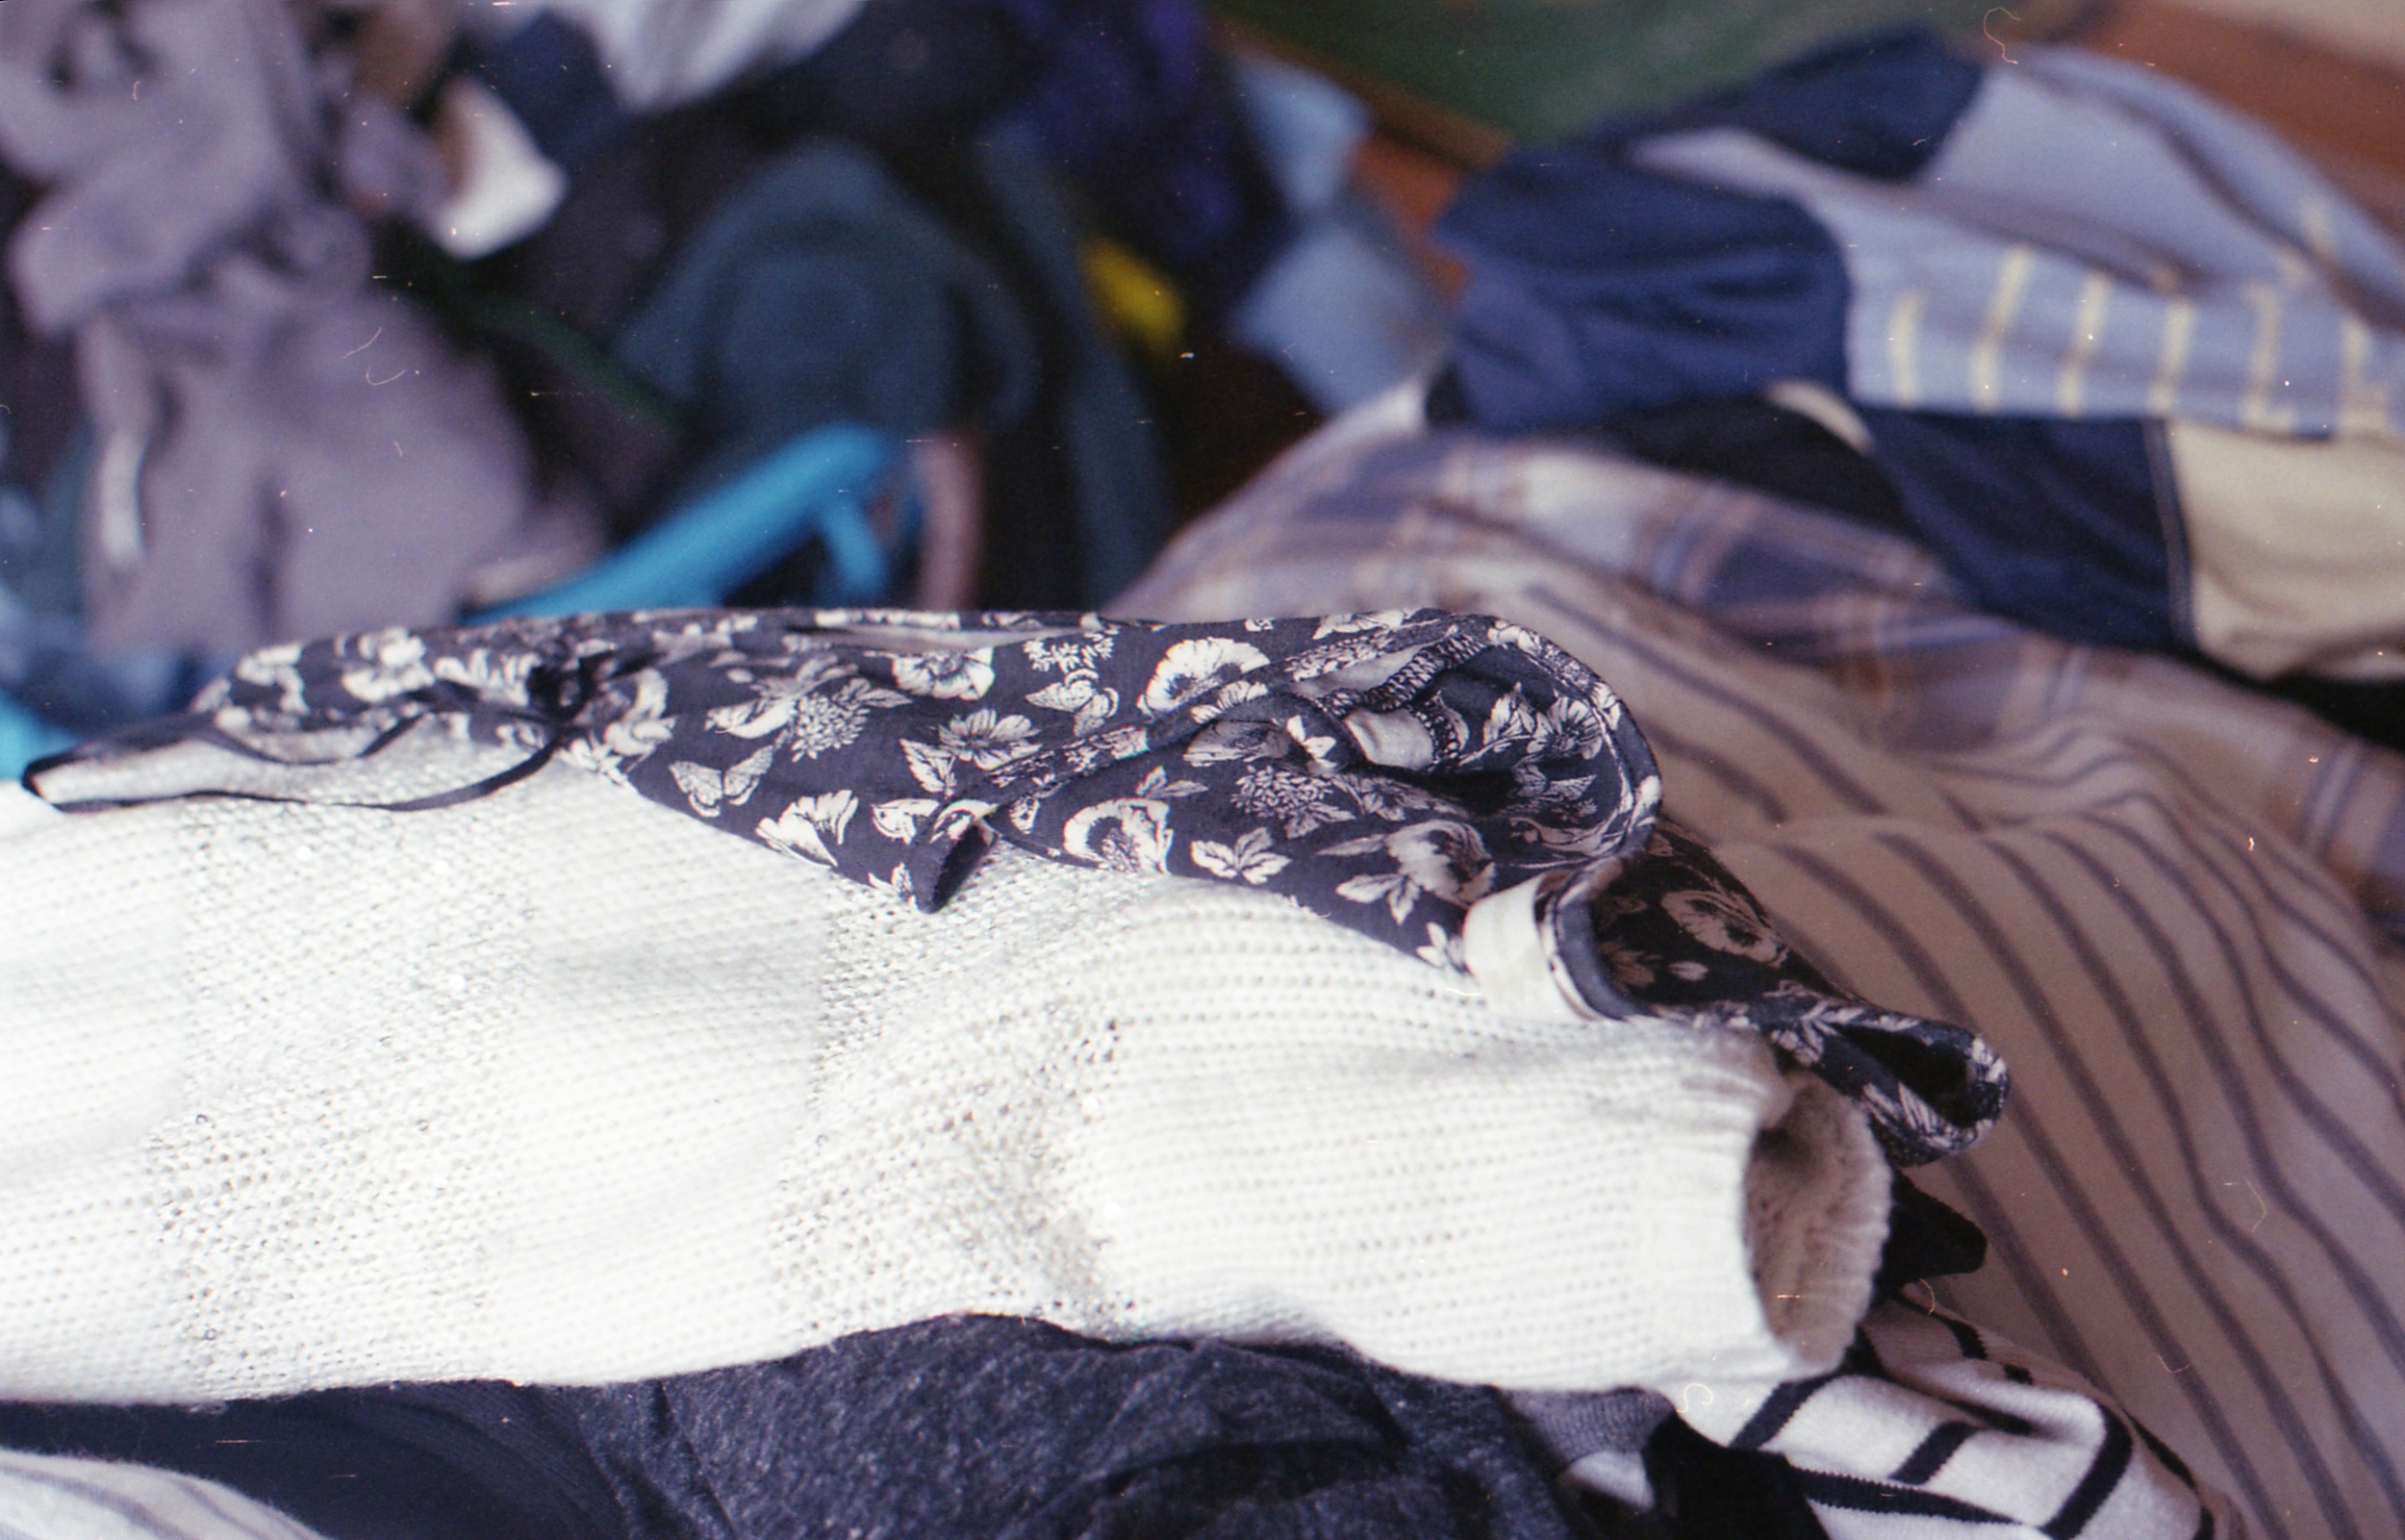 10/366 -I think this is my favourite yet even if it's just clothes on our bed (being in focus helps)